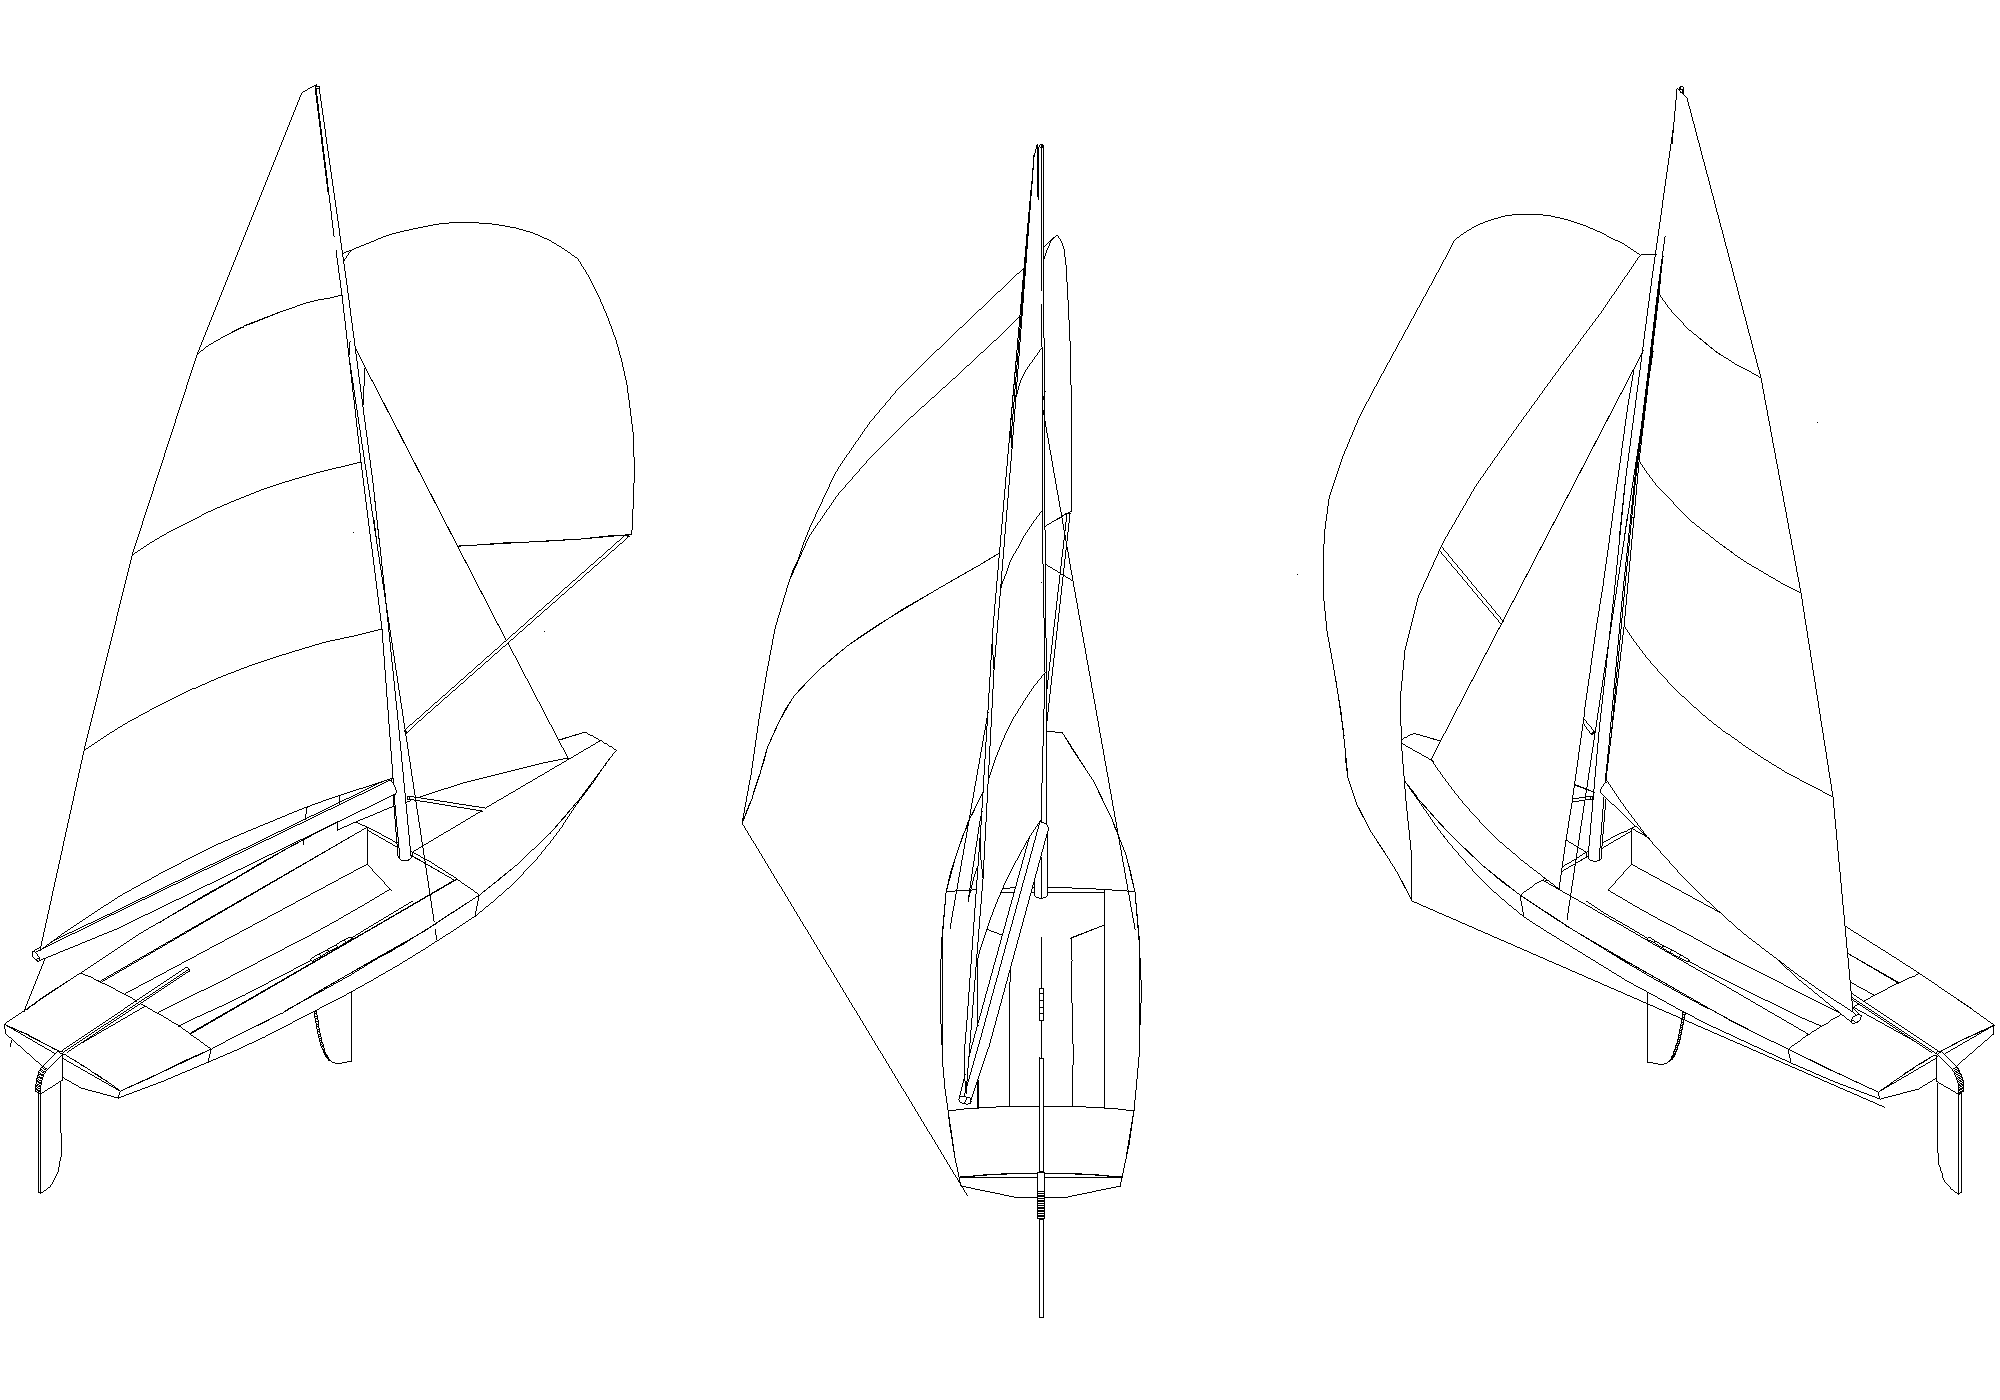 The boat, base view for systems diagrams